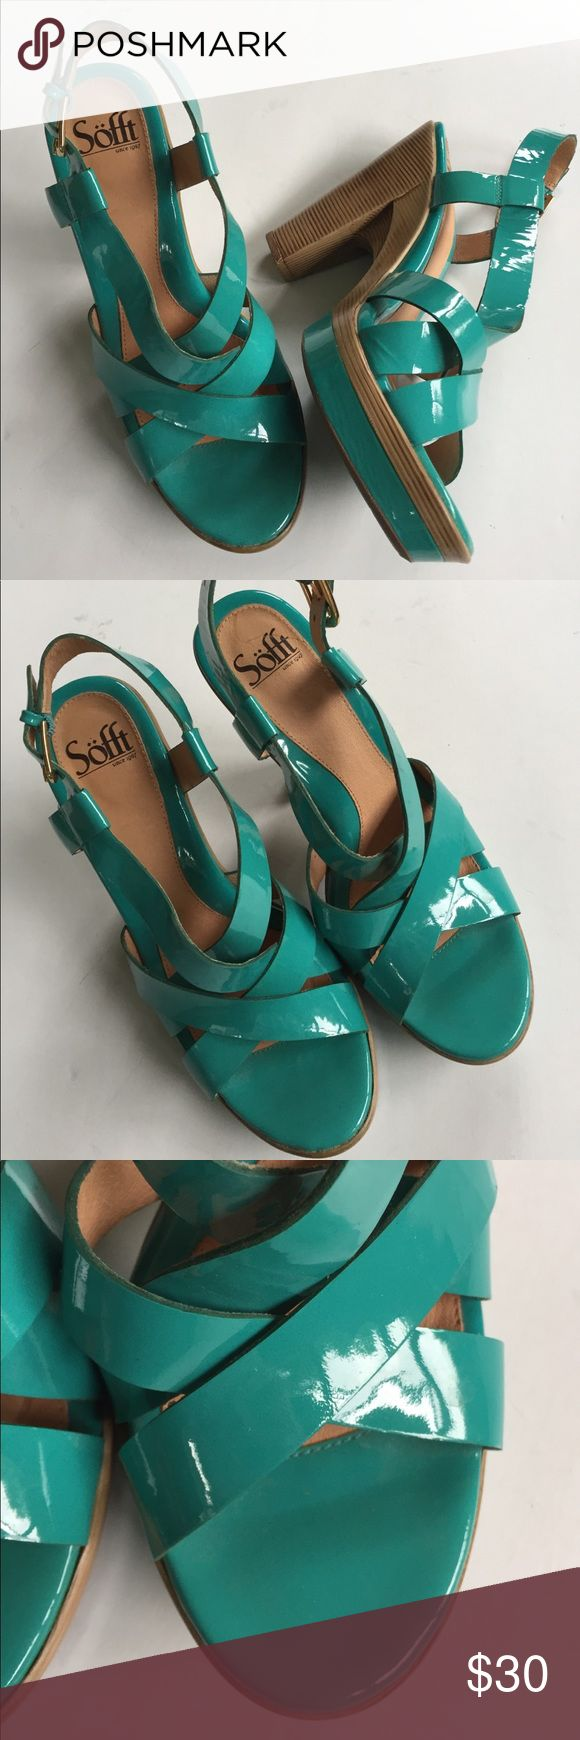 "EUC Sofft leather heels Excellent condition - worn just a couple of times; Beautiful turquoise patent leather strappy 5"" heels with 1"" platform; comfy padded footbed; small scuff mark as shown; SO pretty! Smoke-free/pet-free home. Sofft Shoes"